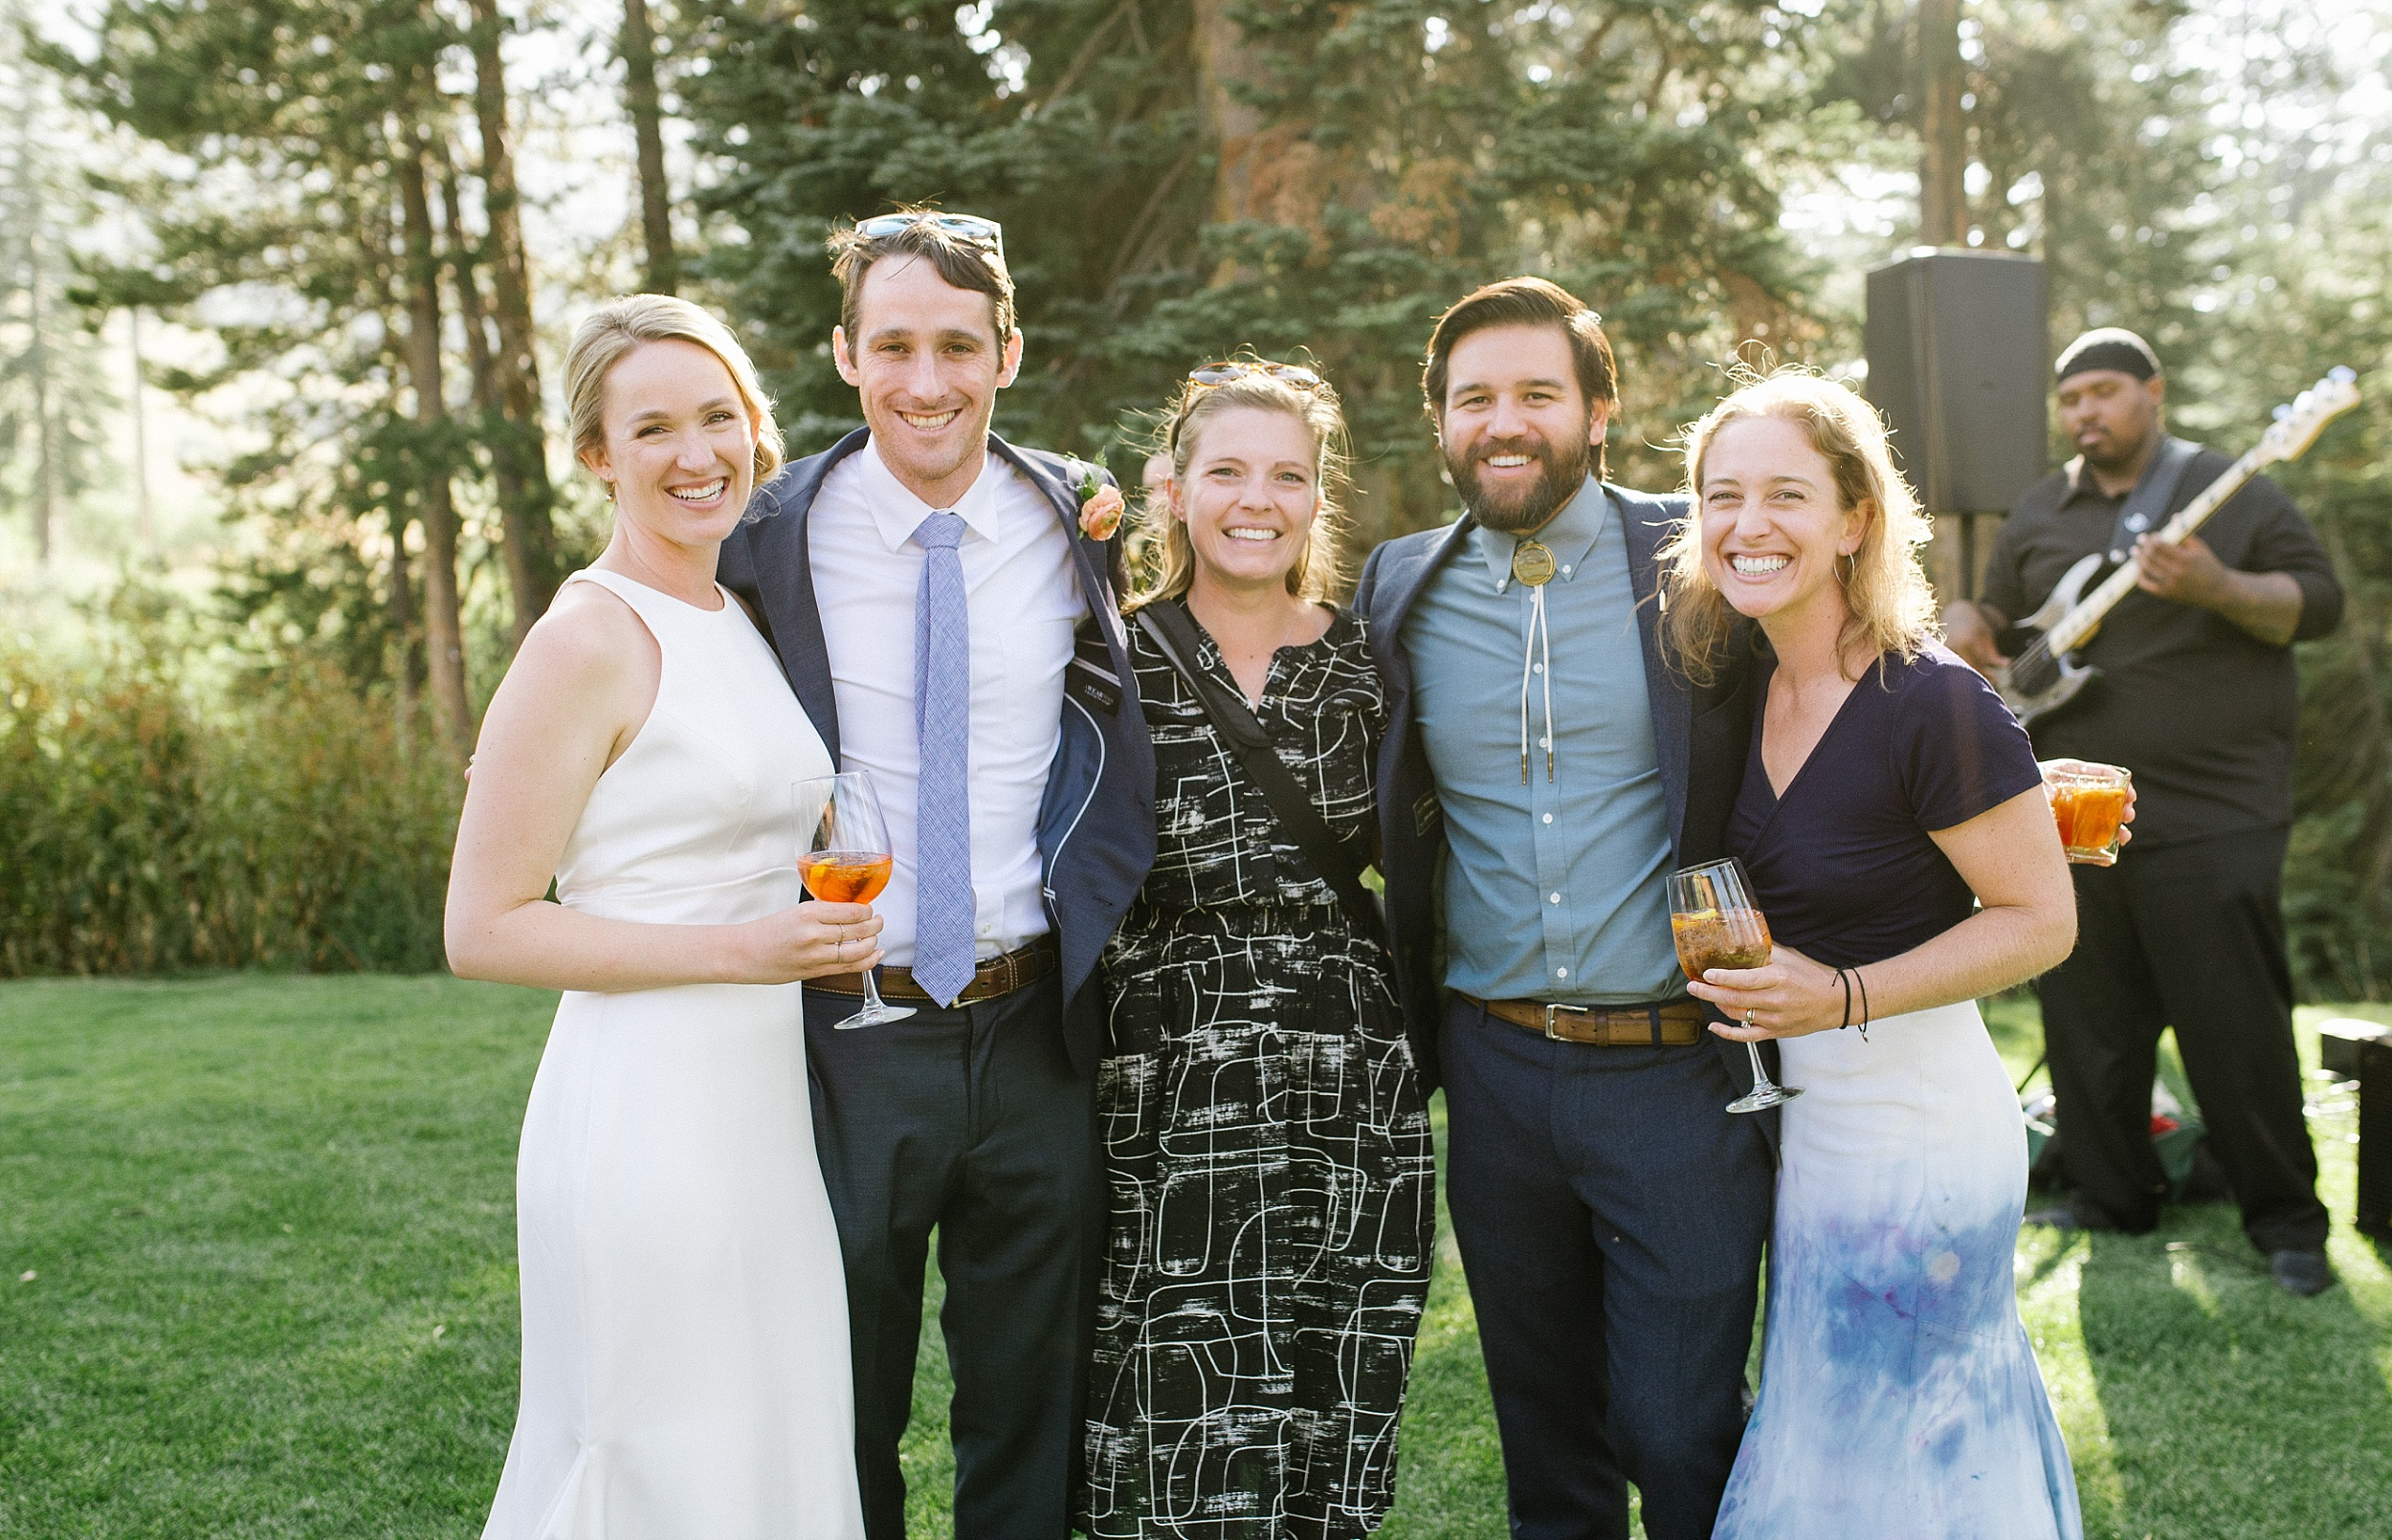 Sugar-Bowl-tahoe-wedding-sallyjohn_chelsea-dier-photography_0026.jpg